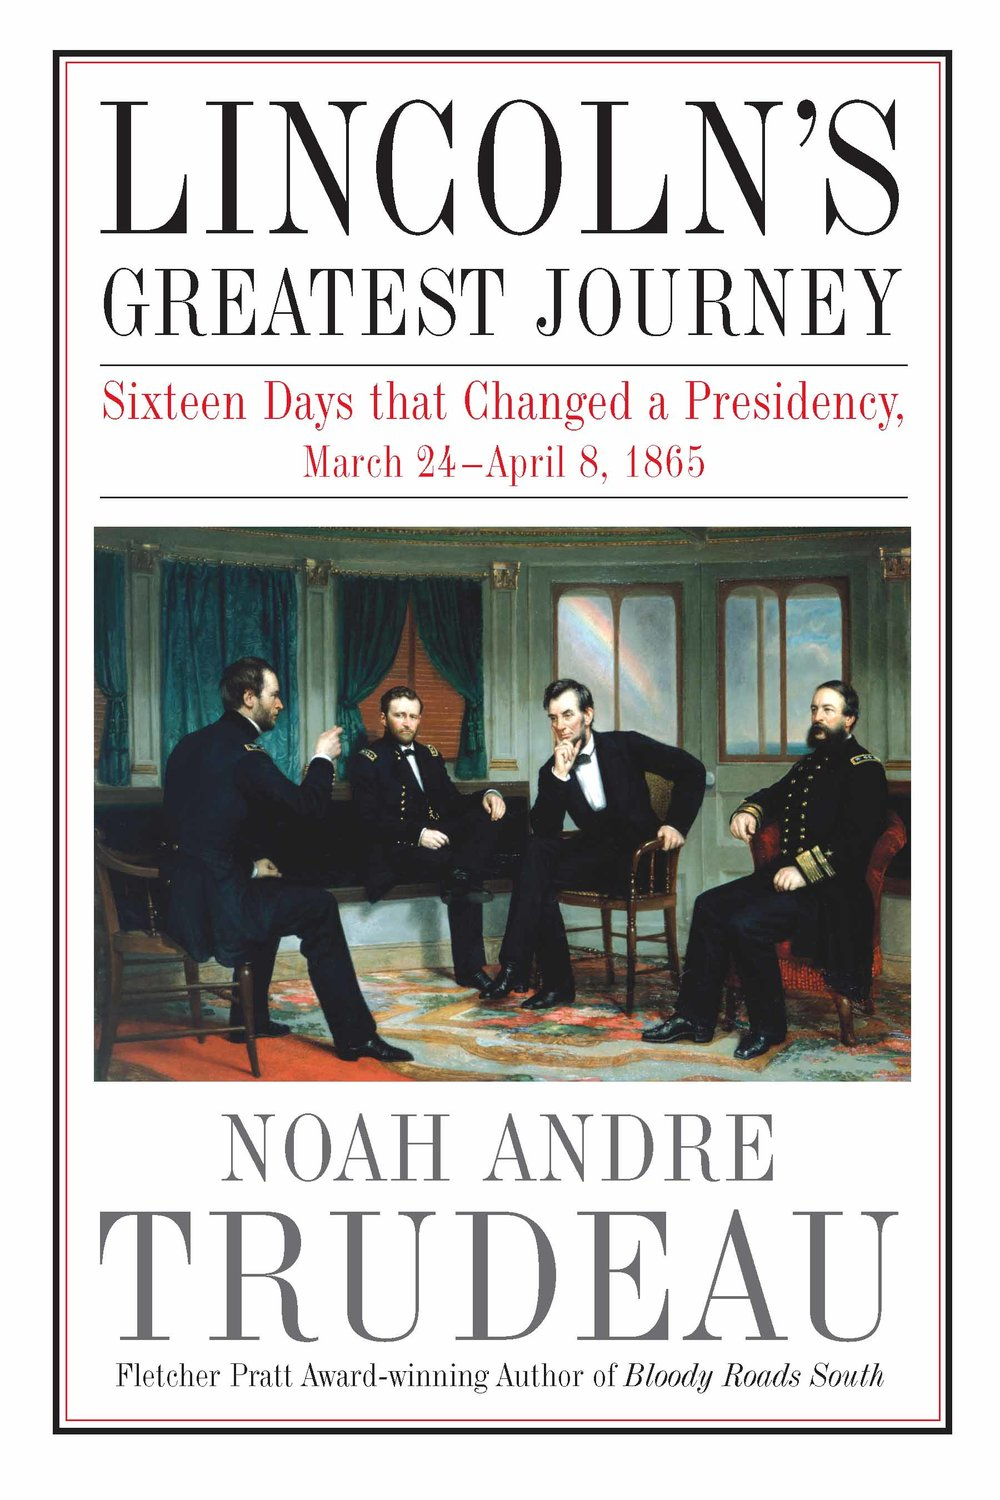 LINCOLN'S GREATEST JOURNEY .jpg